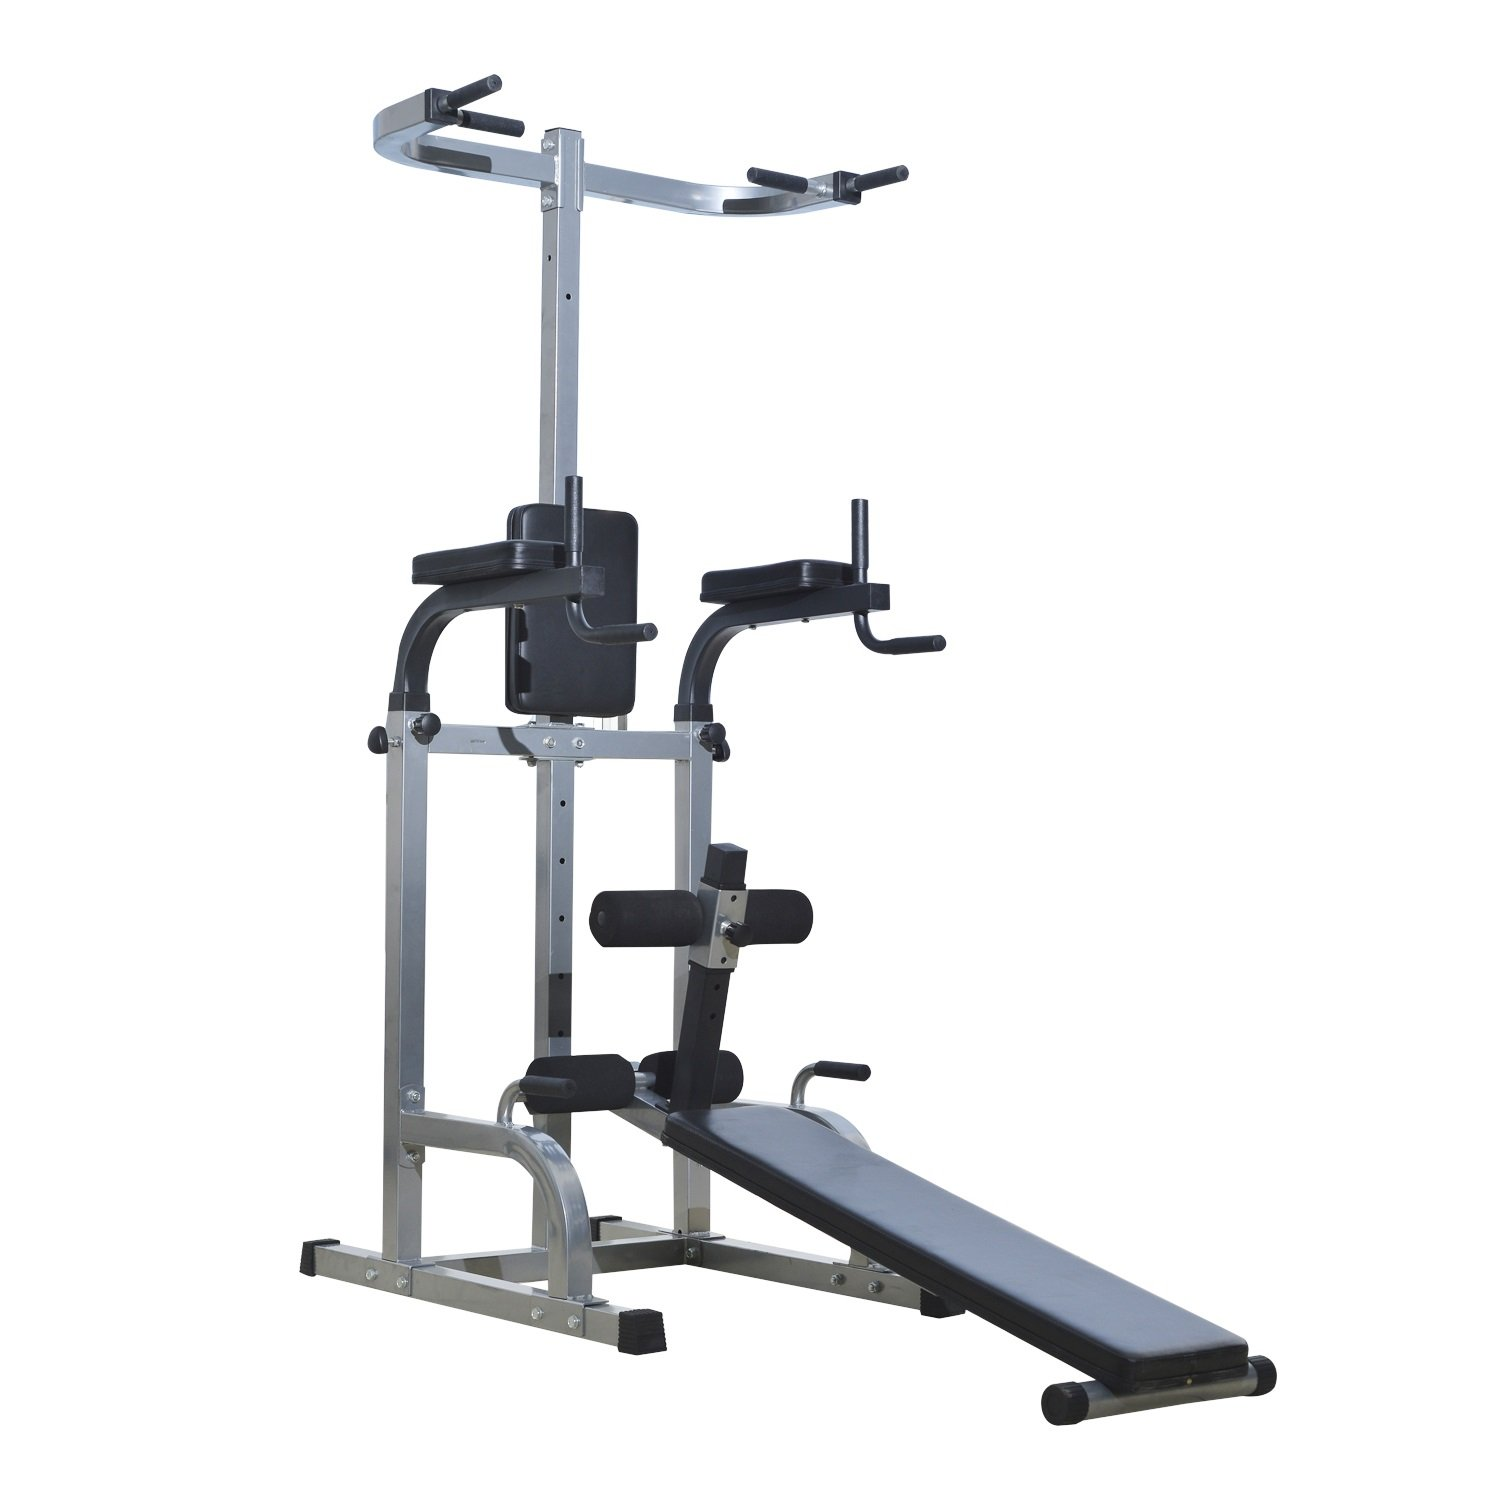 Soozier 80'' Full Body Power Tower Home Gym Fitness Station w/ Adjustable Sit Up Bench by Soozier